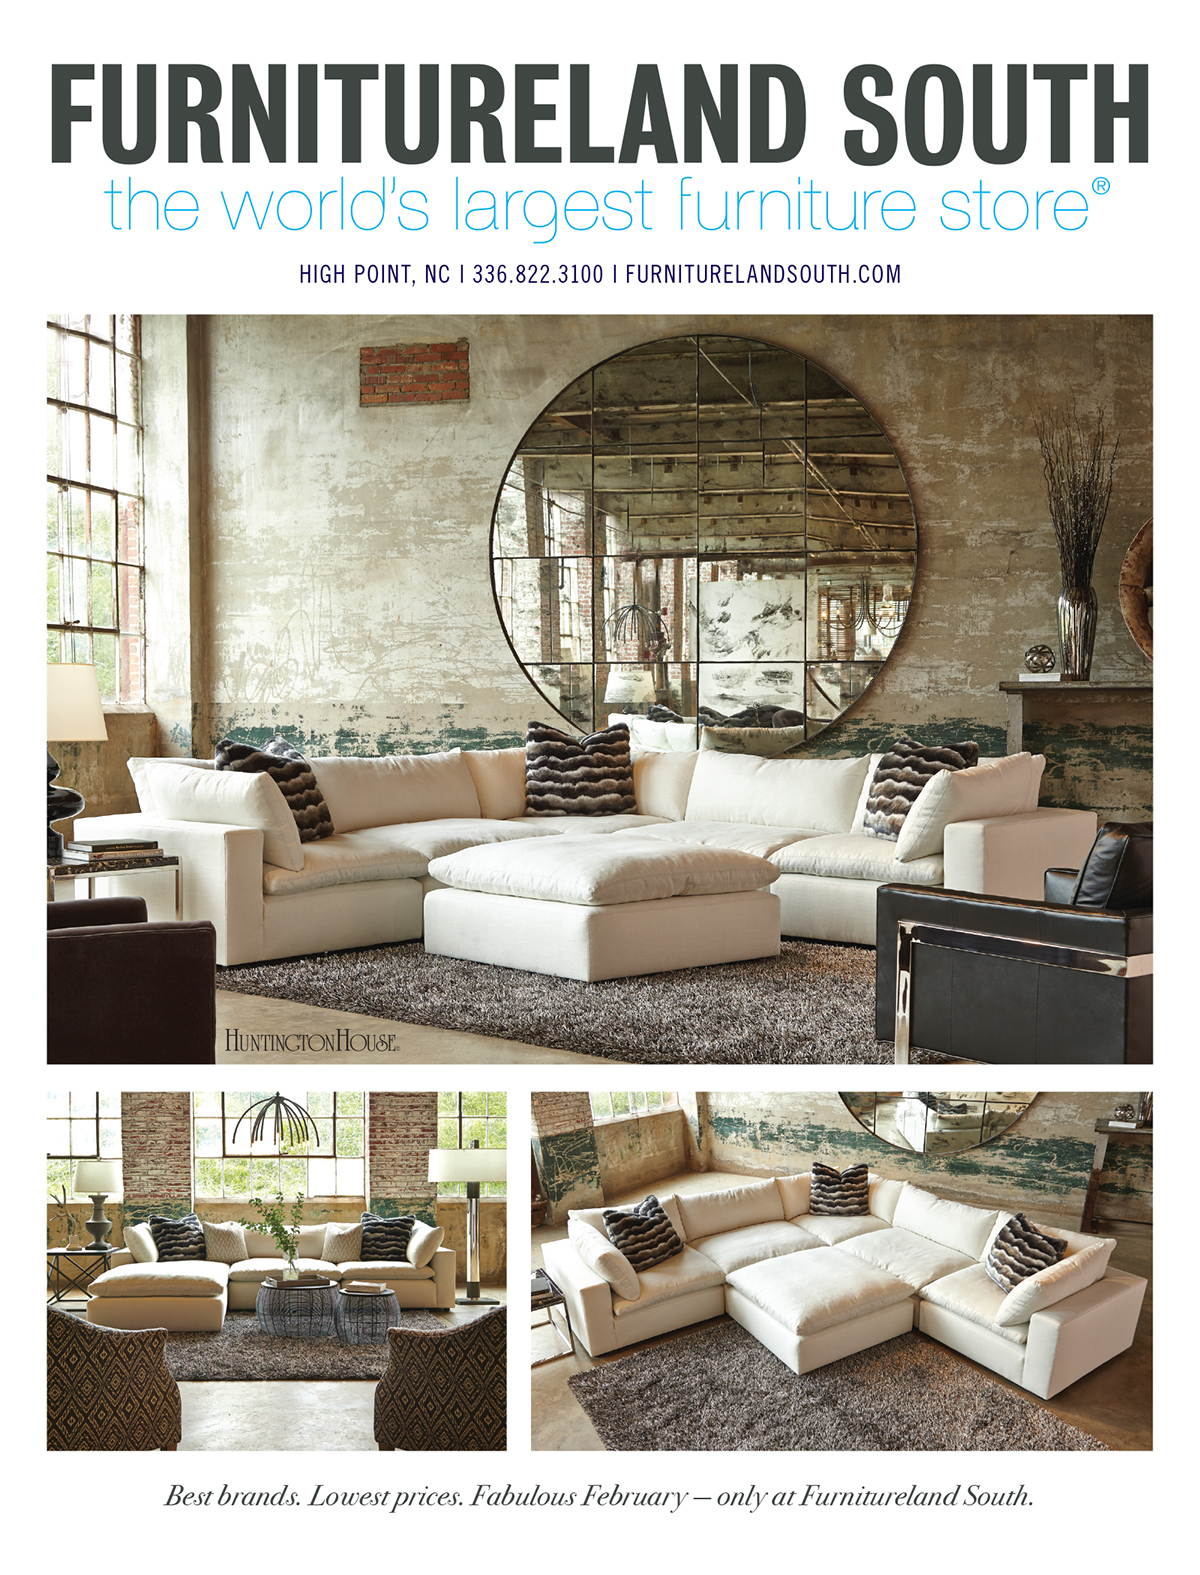 Print Advertising For Furnitureland South On Pantone